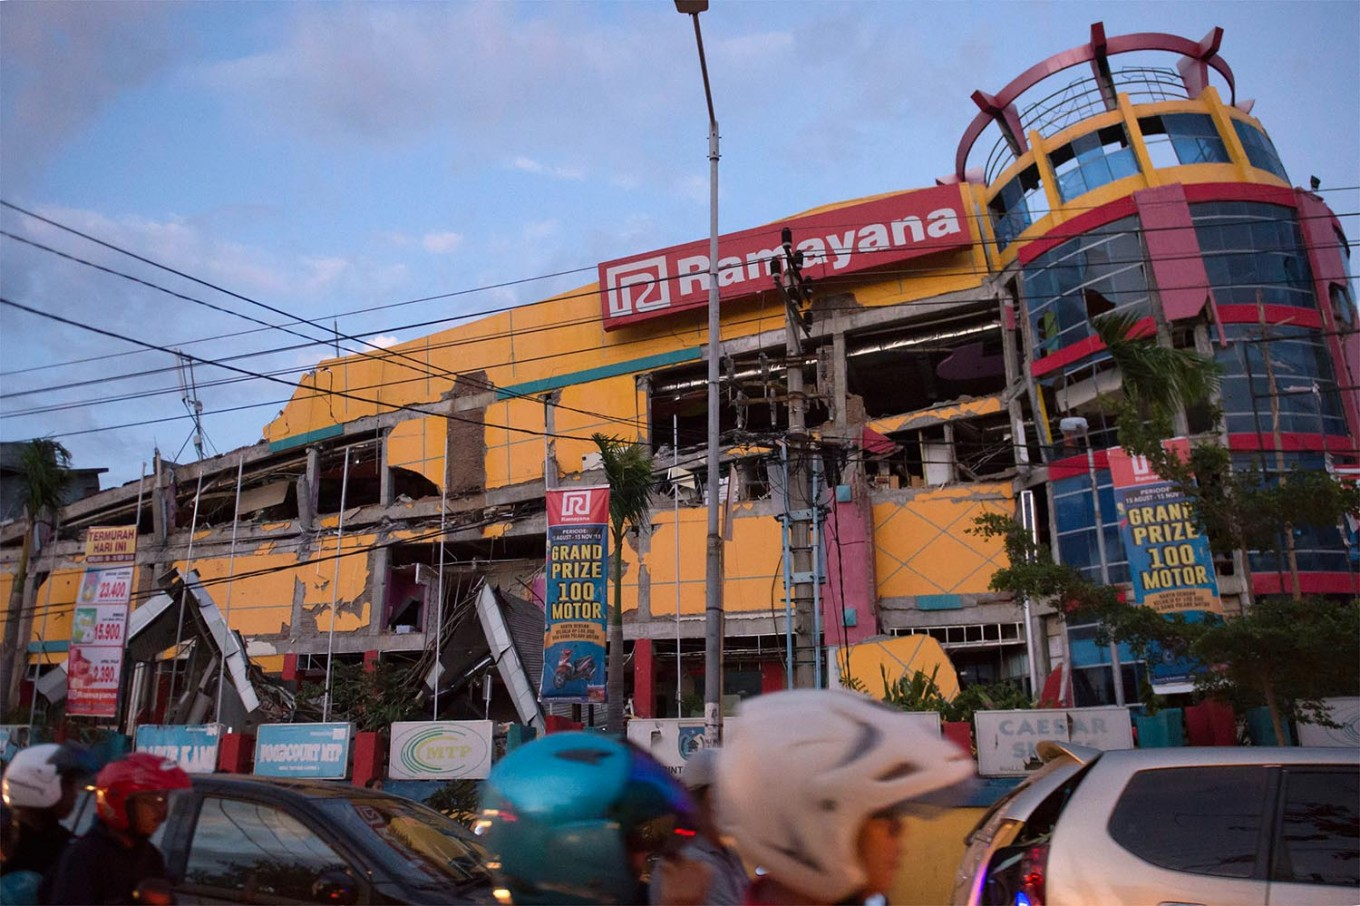 Motorists drive past a collapsed shopping mall in downtown Palu, Indonesia's Central Sulawesi on September 30, 2018, following the September 28 earthquake and tsunami. The death toll in Indonesia's quake-tsunami disaster nearly doubled to more than 800 on September 30, as ill-equipped rescuers struggled to reach scores of trapped victims, health officials resorted to mass burials and desperate residents looted shops for food and water. AFP/ Bay Ismoyo